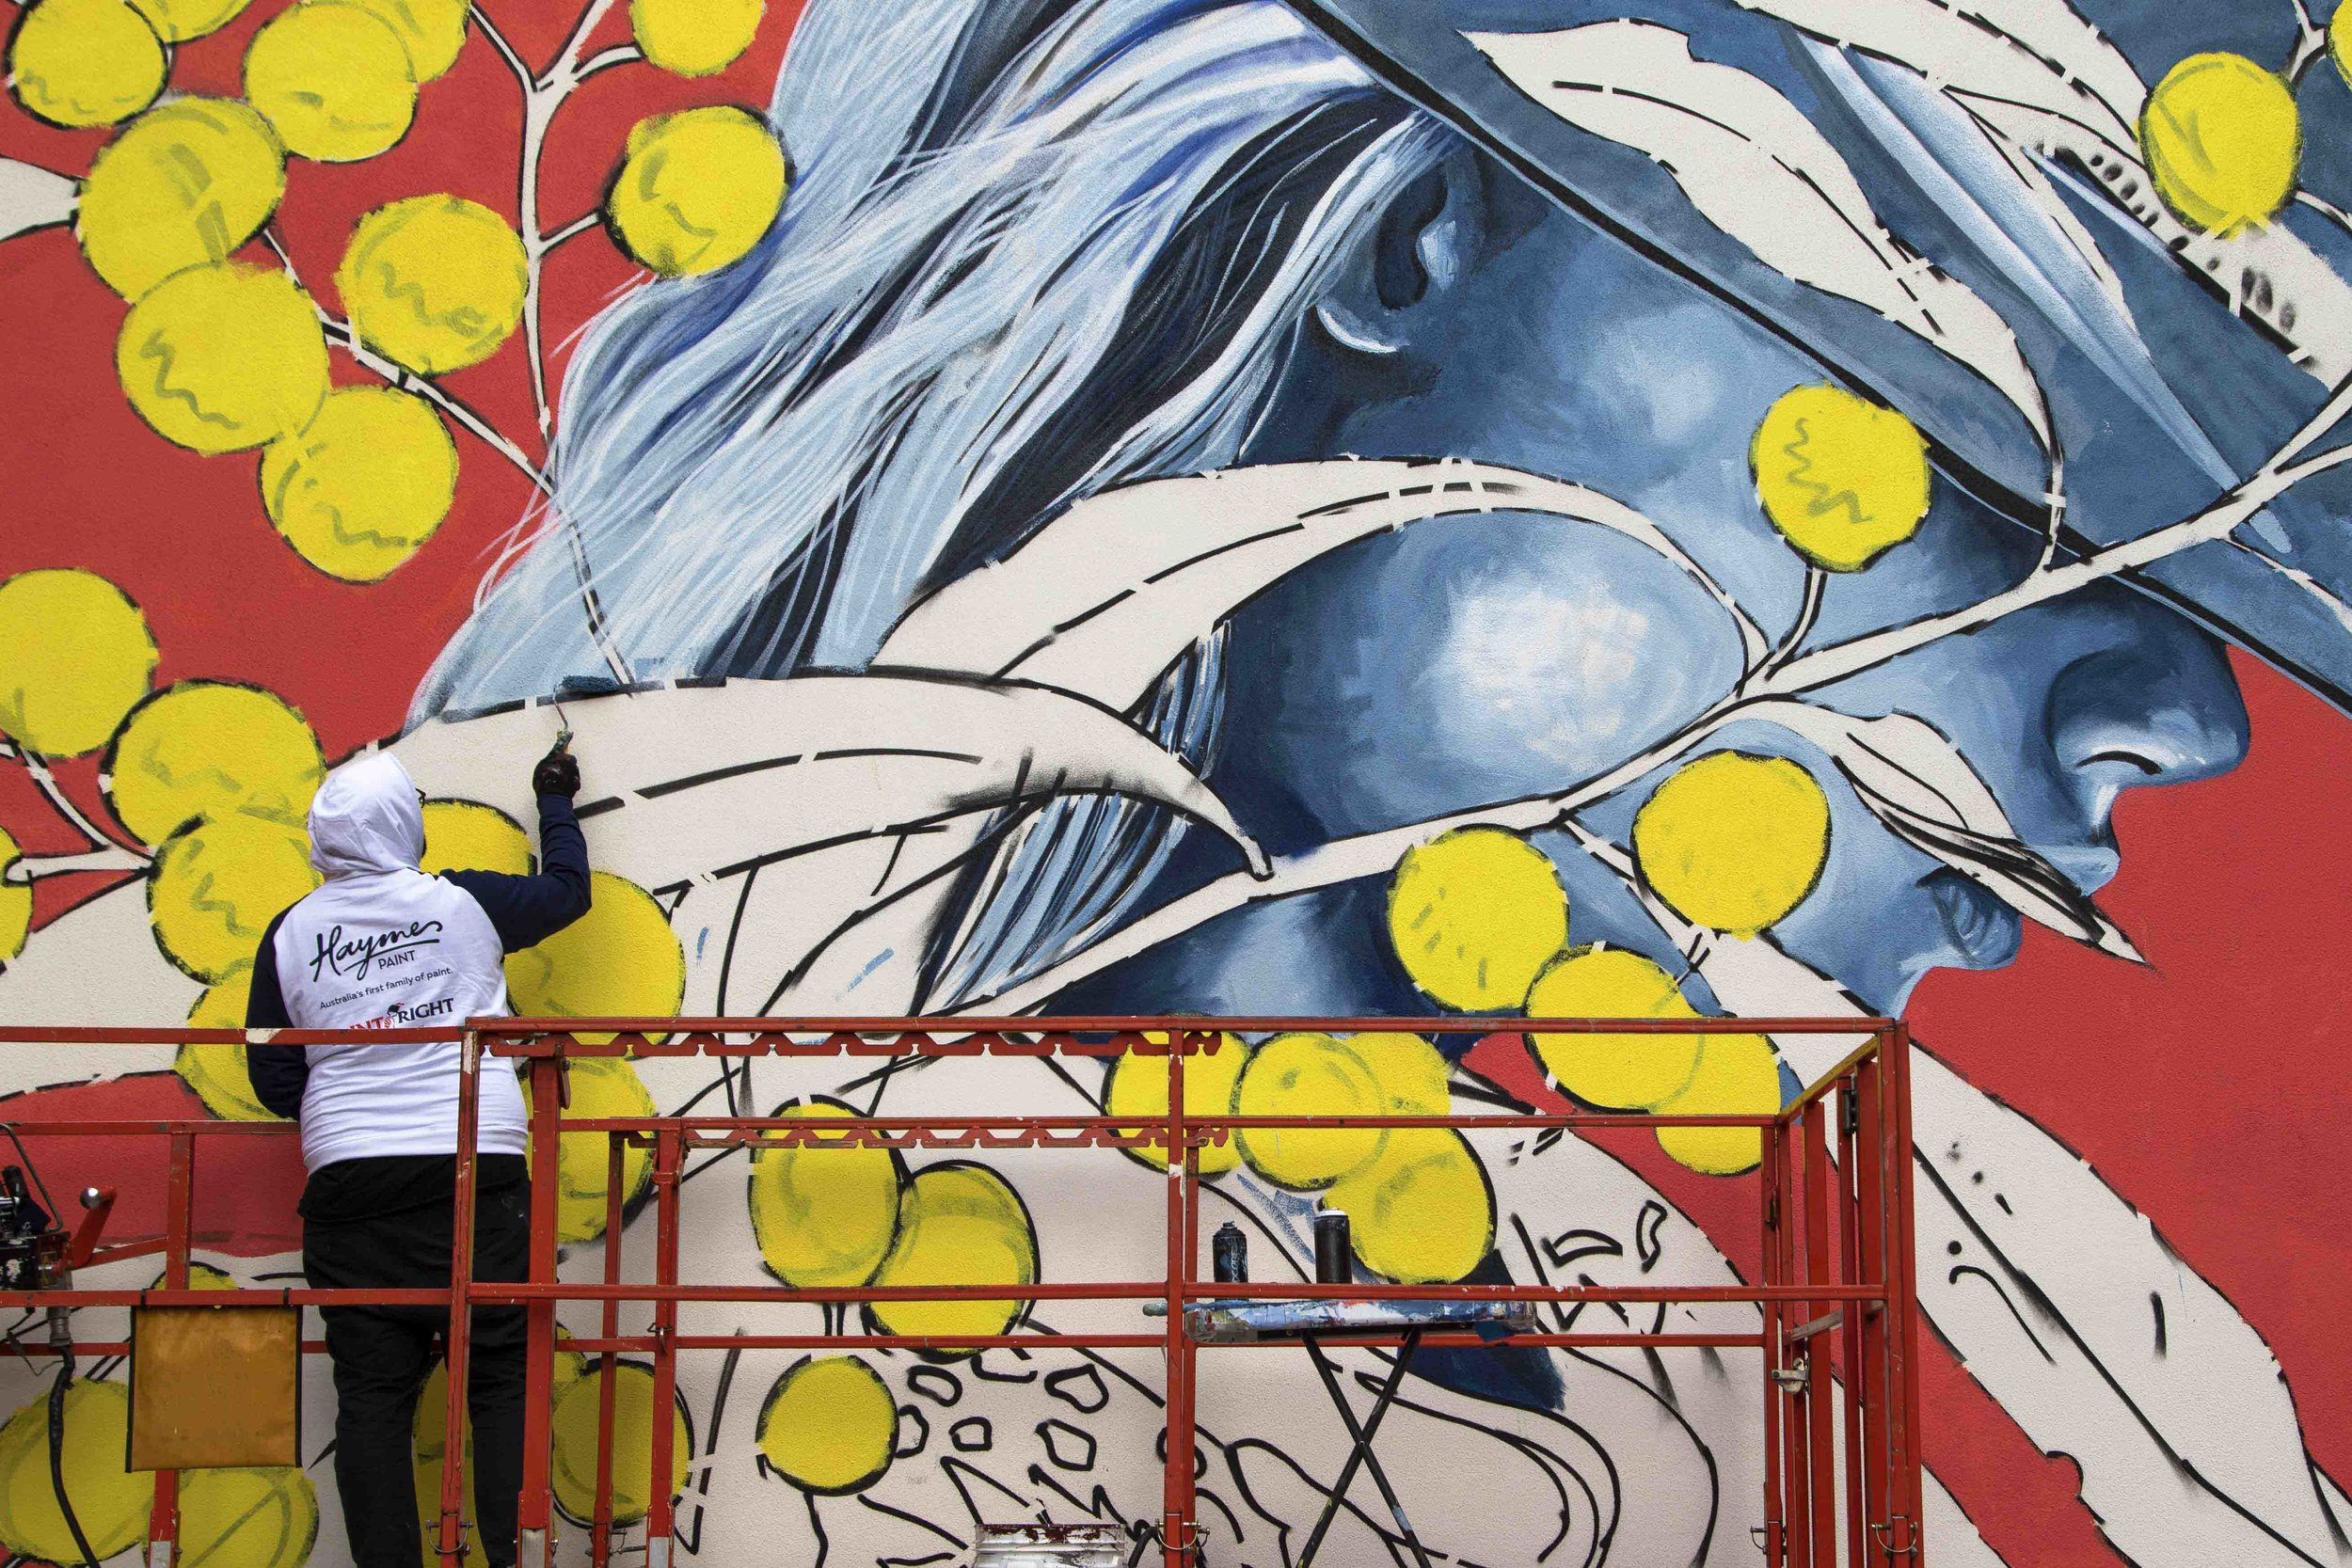 Jack Fran Paints Mural In Bendigo - Day 3-8.jpg